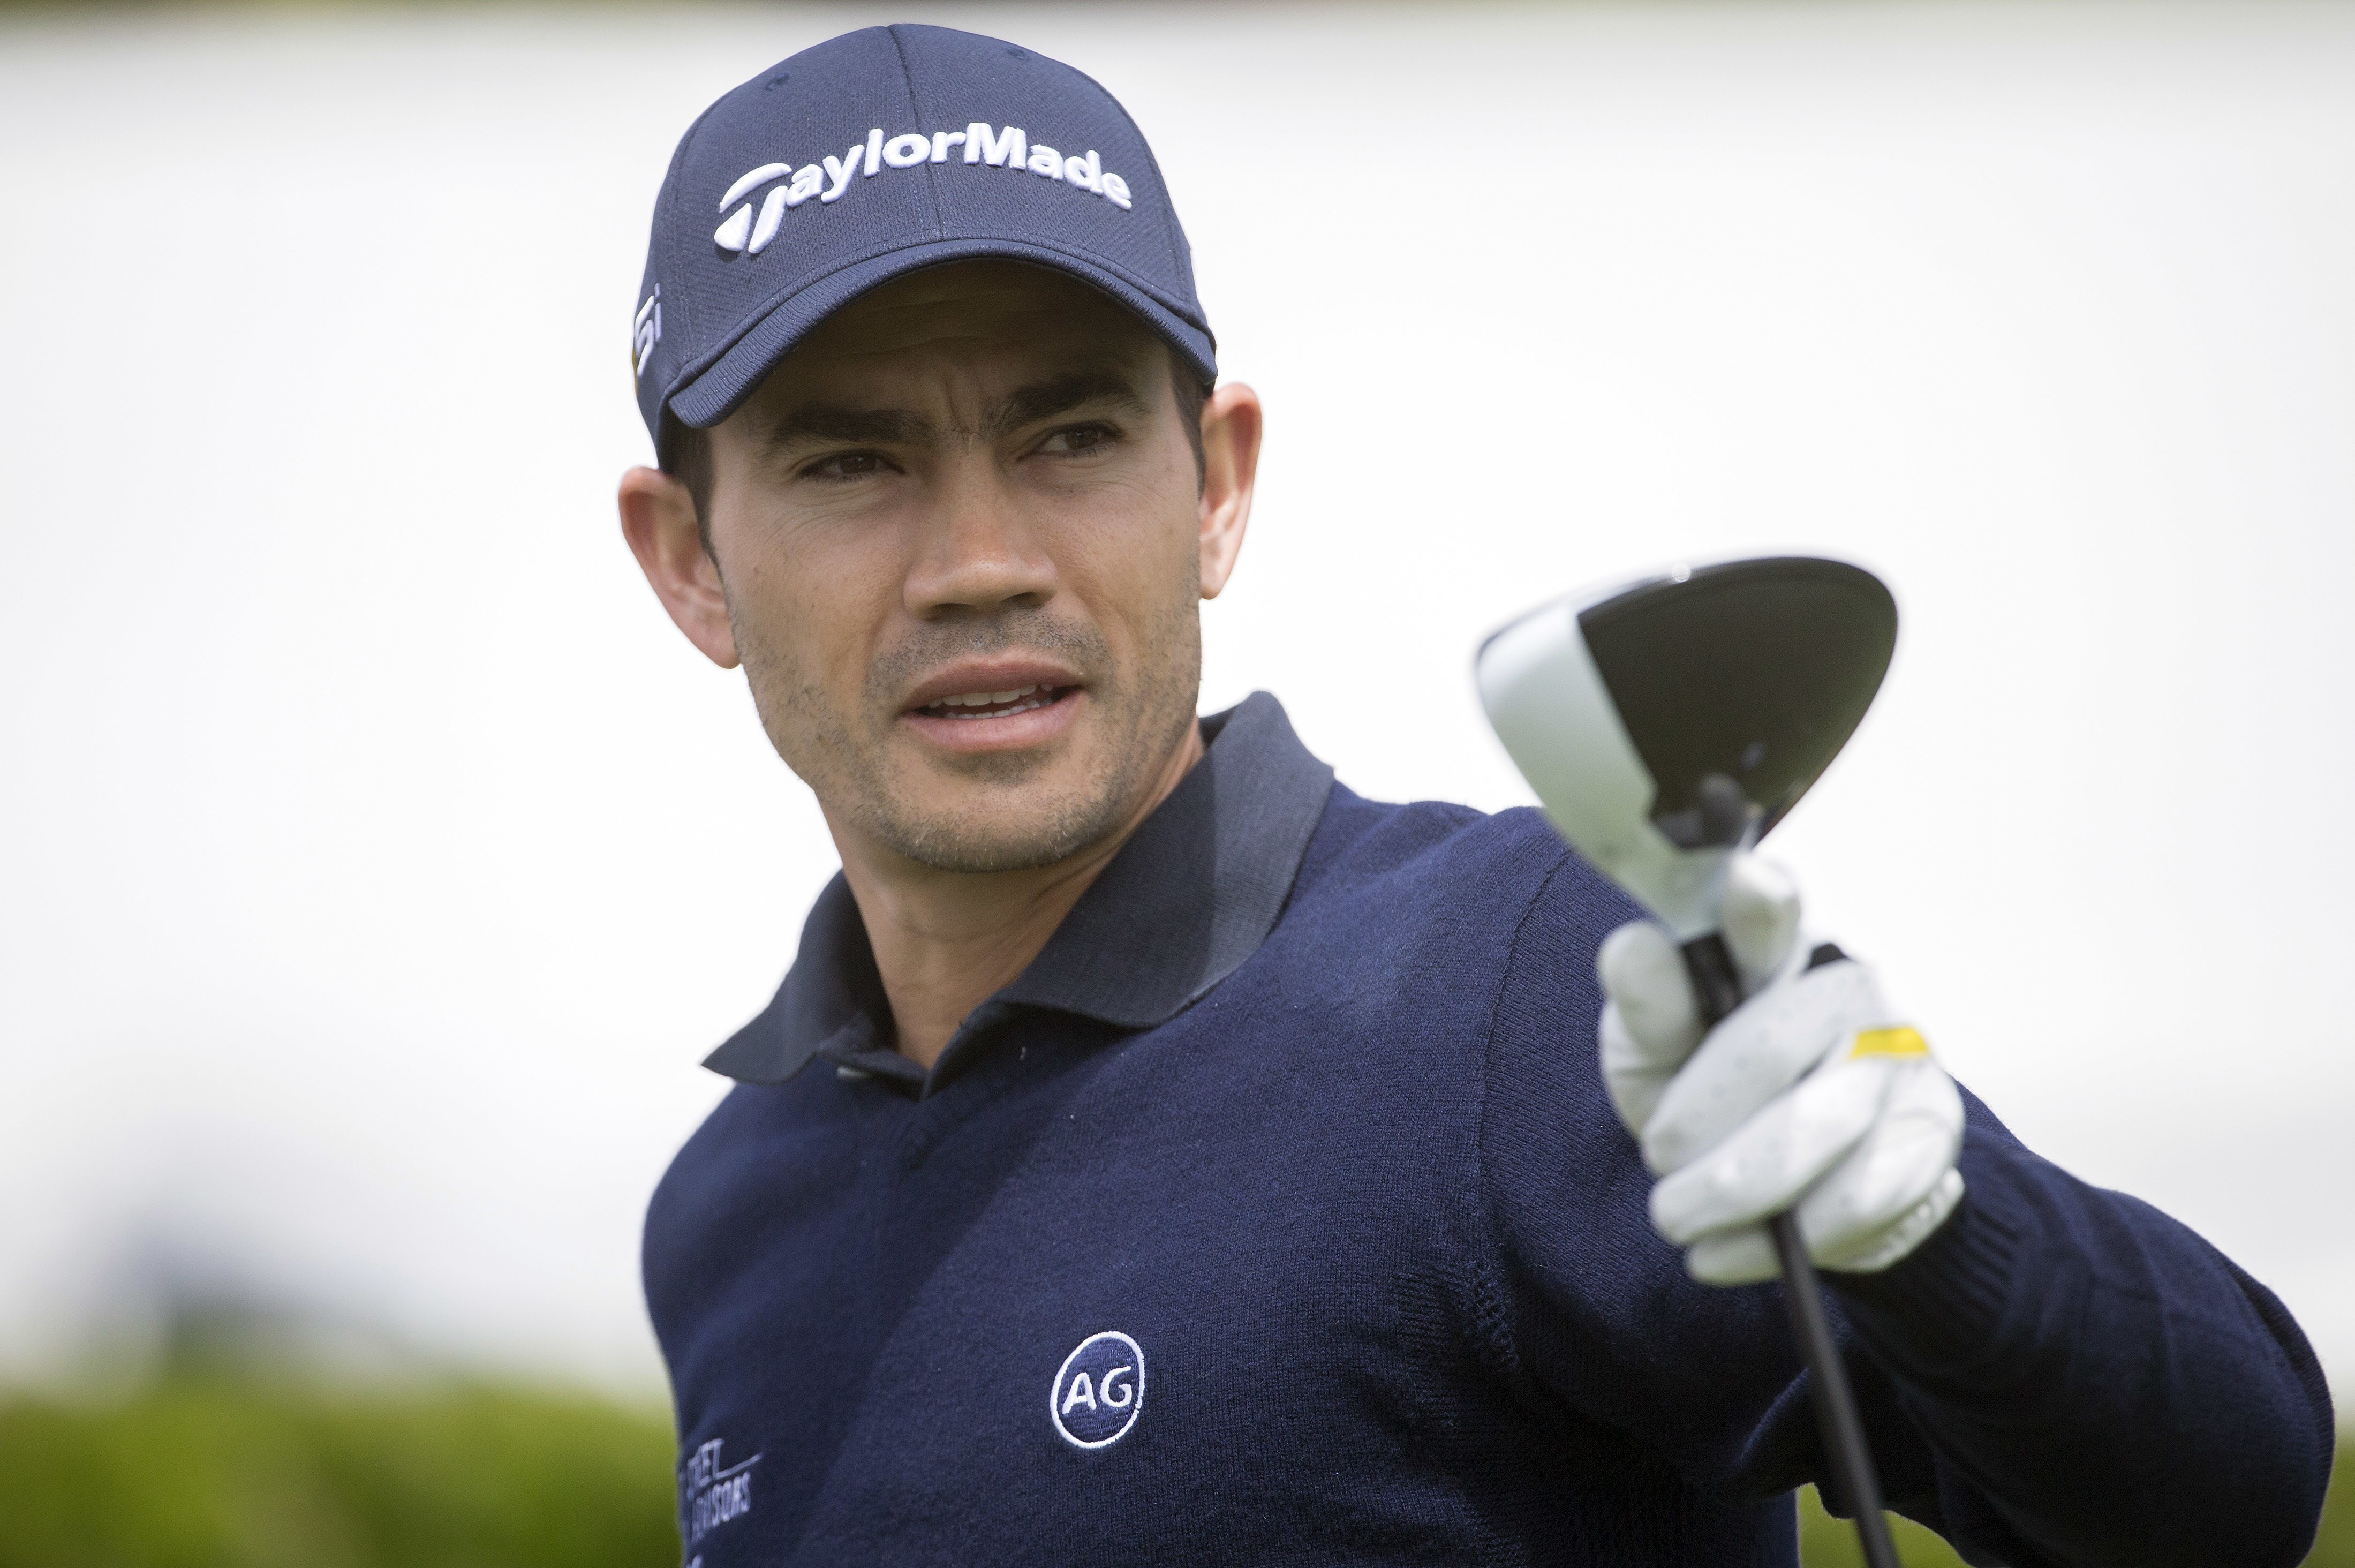 FILE - In this April 14, 2016, file photo, Camilo Villegas, of Colombia, prepares to tee off on the first hole during the first round of the RBC Heritage golf tournament in Hilton Head Island, S.C.  Villegas has pulled out of the Olympics because he is tr